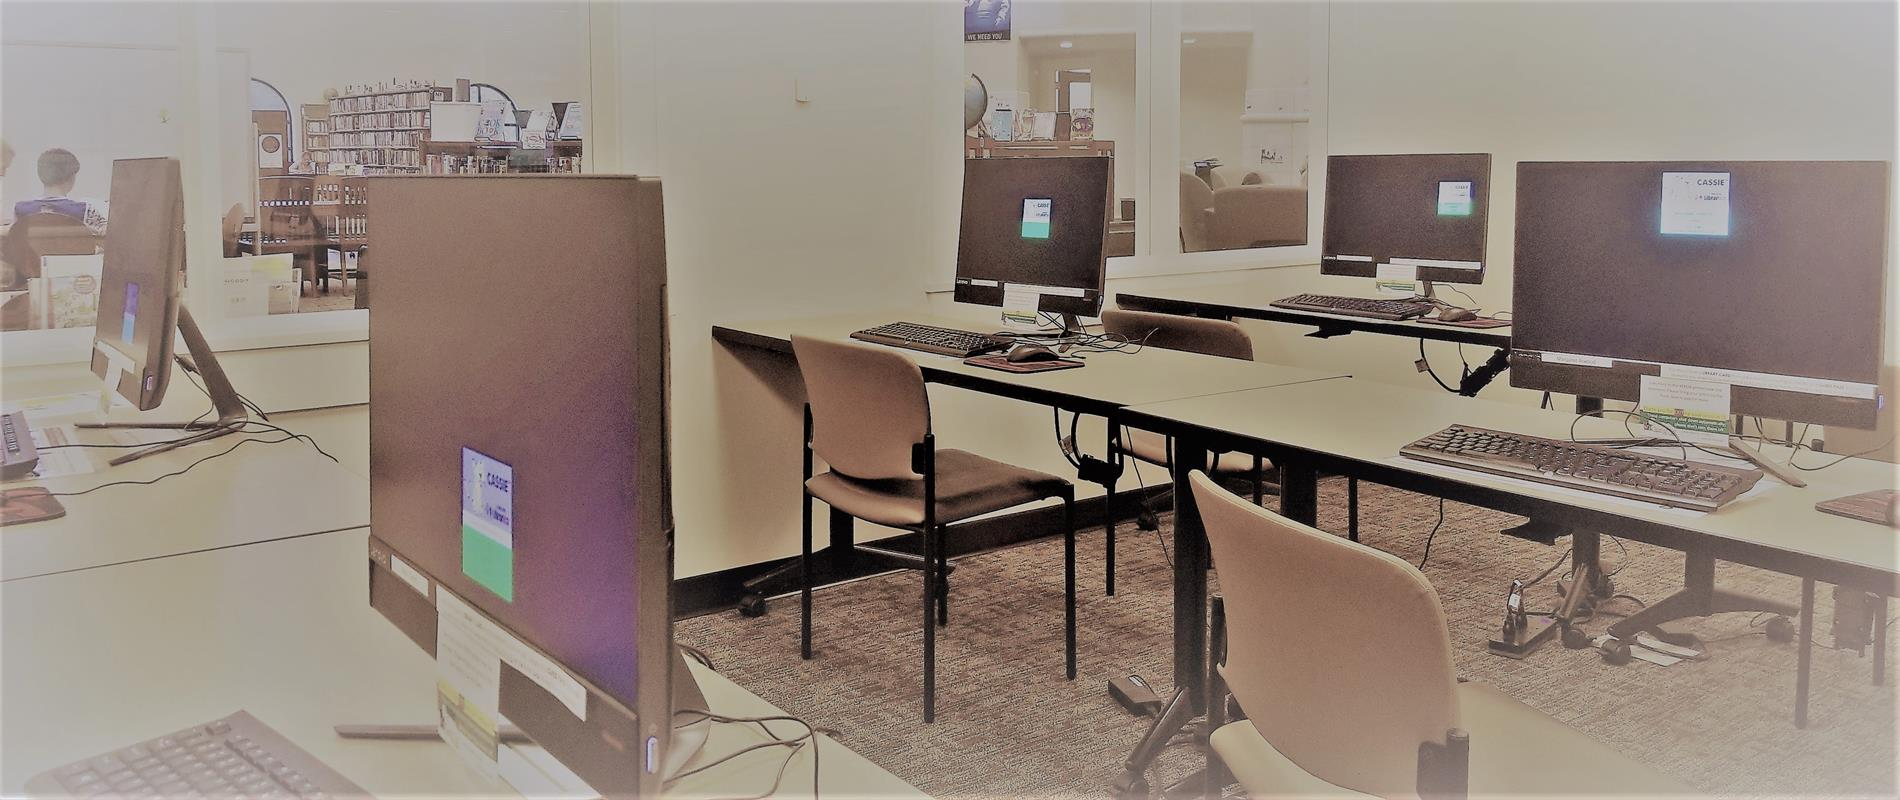 computers stations on tables in library